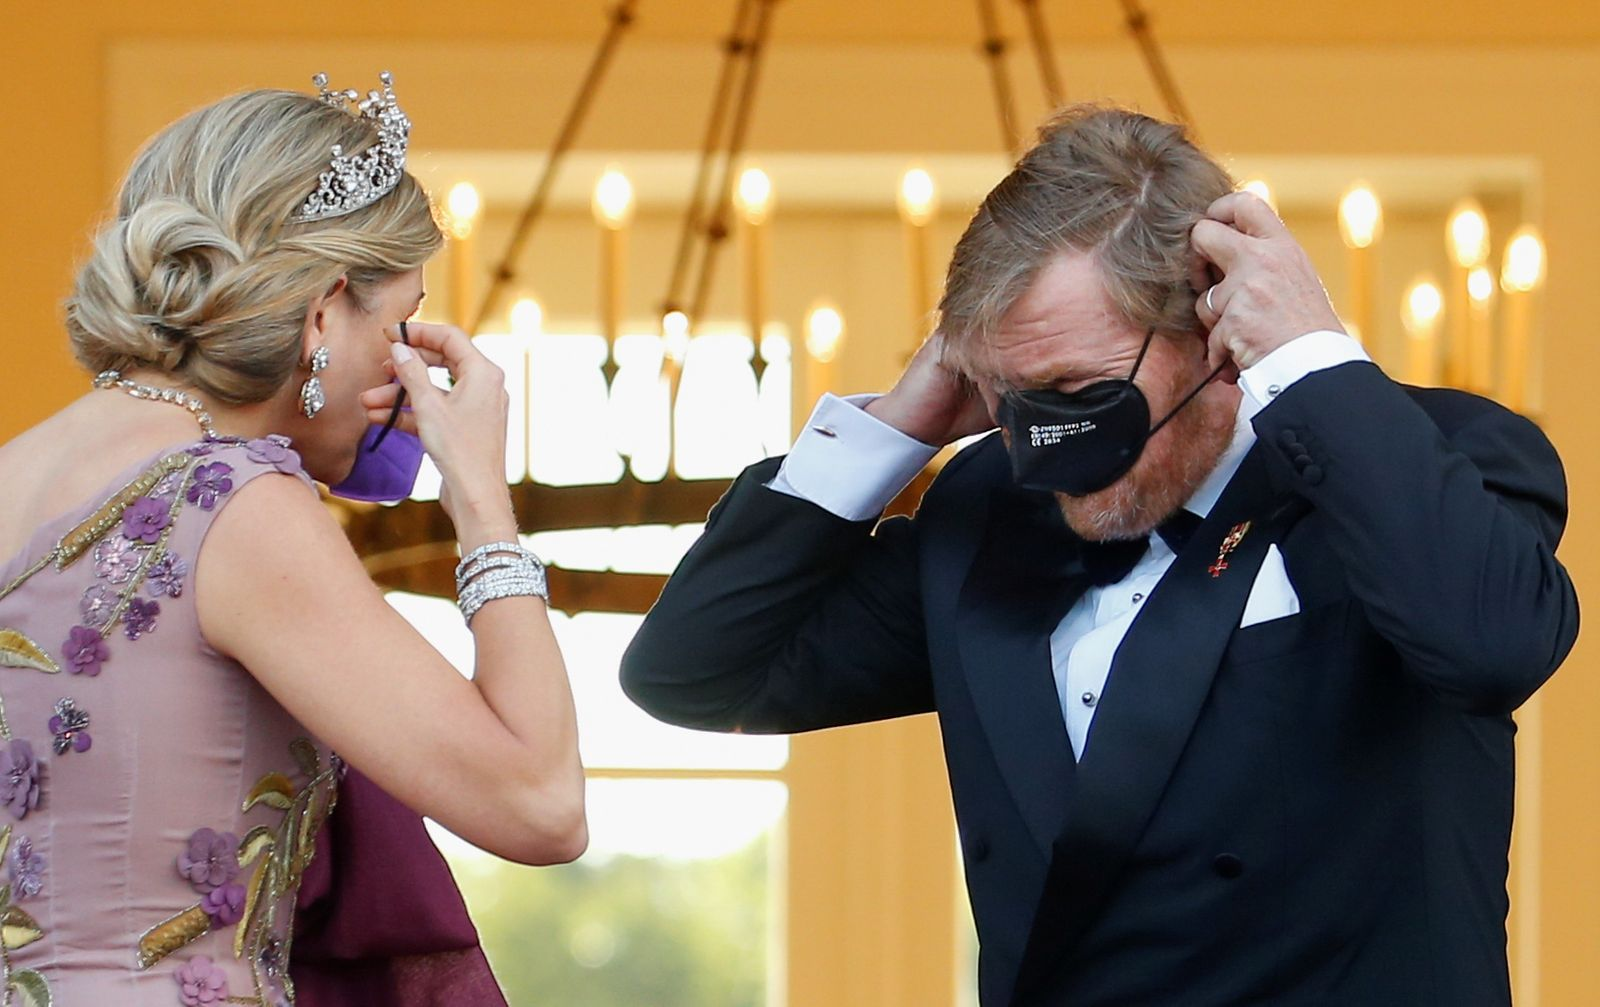 King Willem-Alexander, Queen Maxima of the Dutch Royal family arrive at Bellevue Palace in Berlin